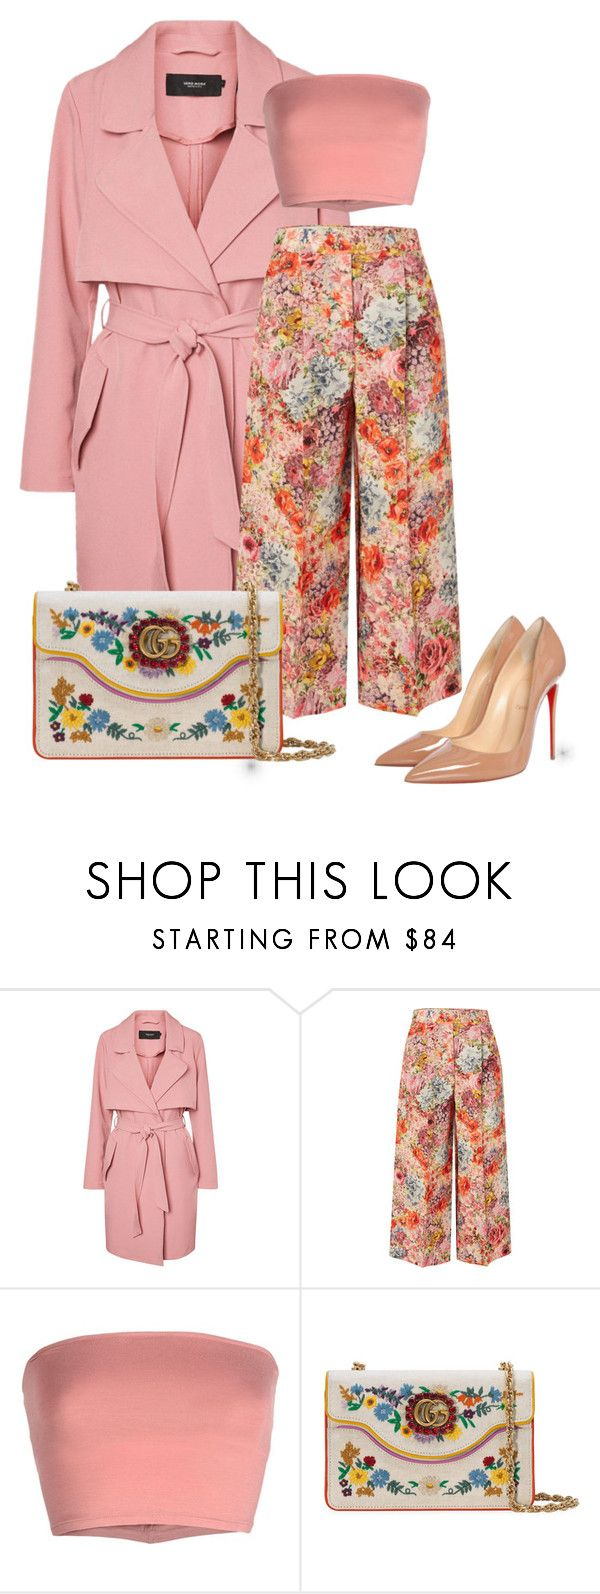 """""""#4"""" by stylewithlammybel-1 ❤ liked on Polyvore featuring Valentino, Annarita N., Gucci and Christian Louboutin"""